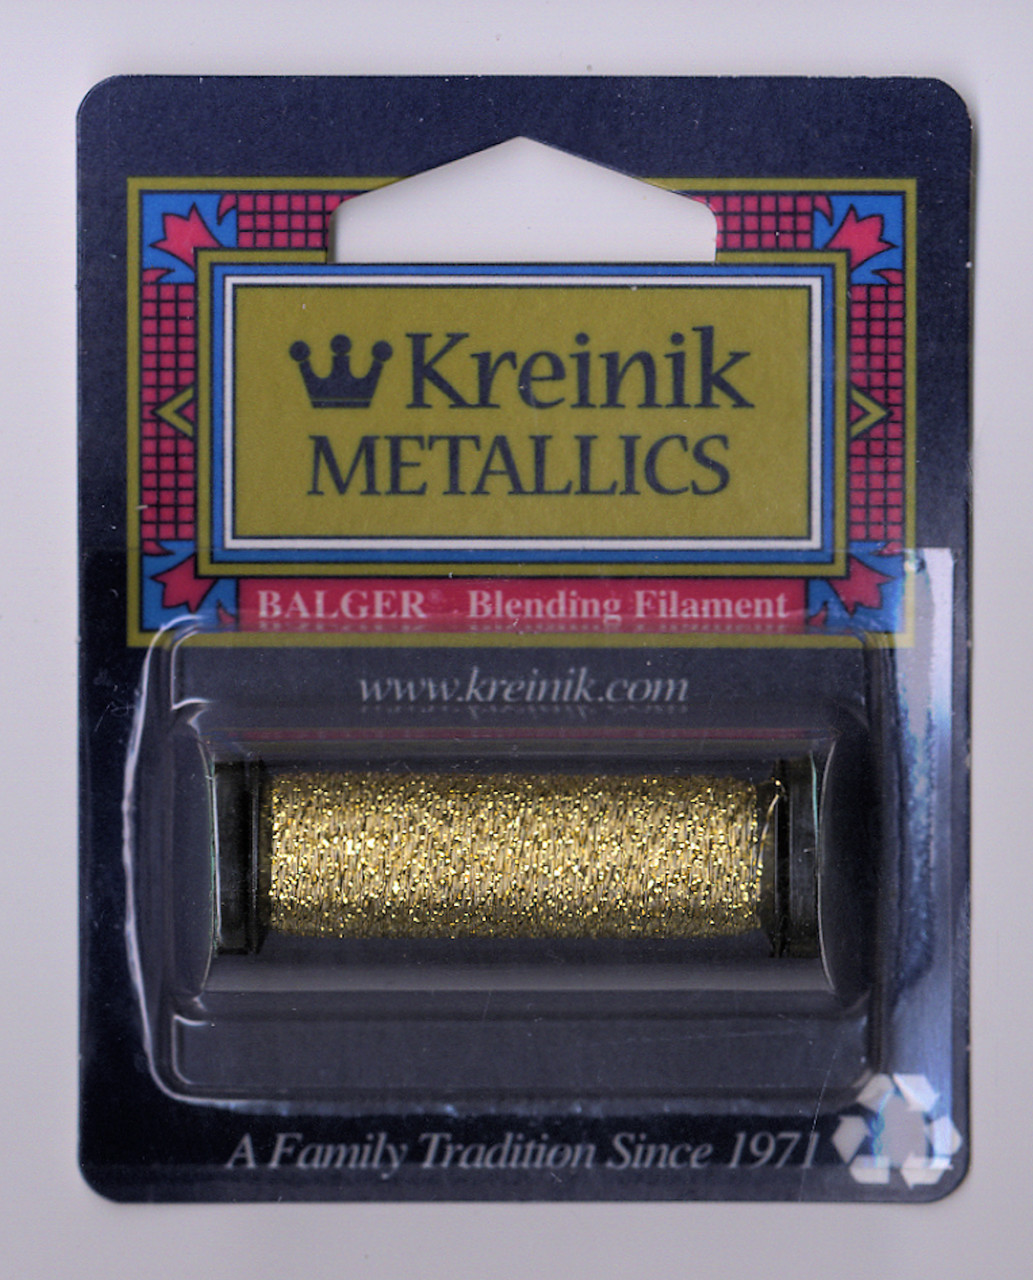 Kreinik Metallics Blending Filament - Gold #002